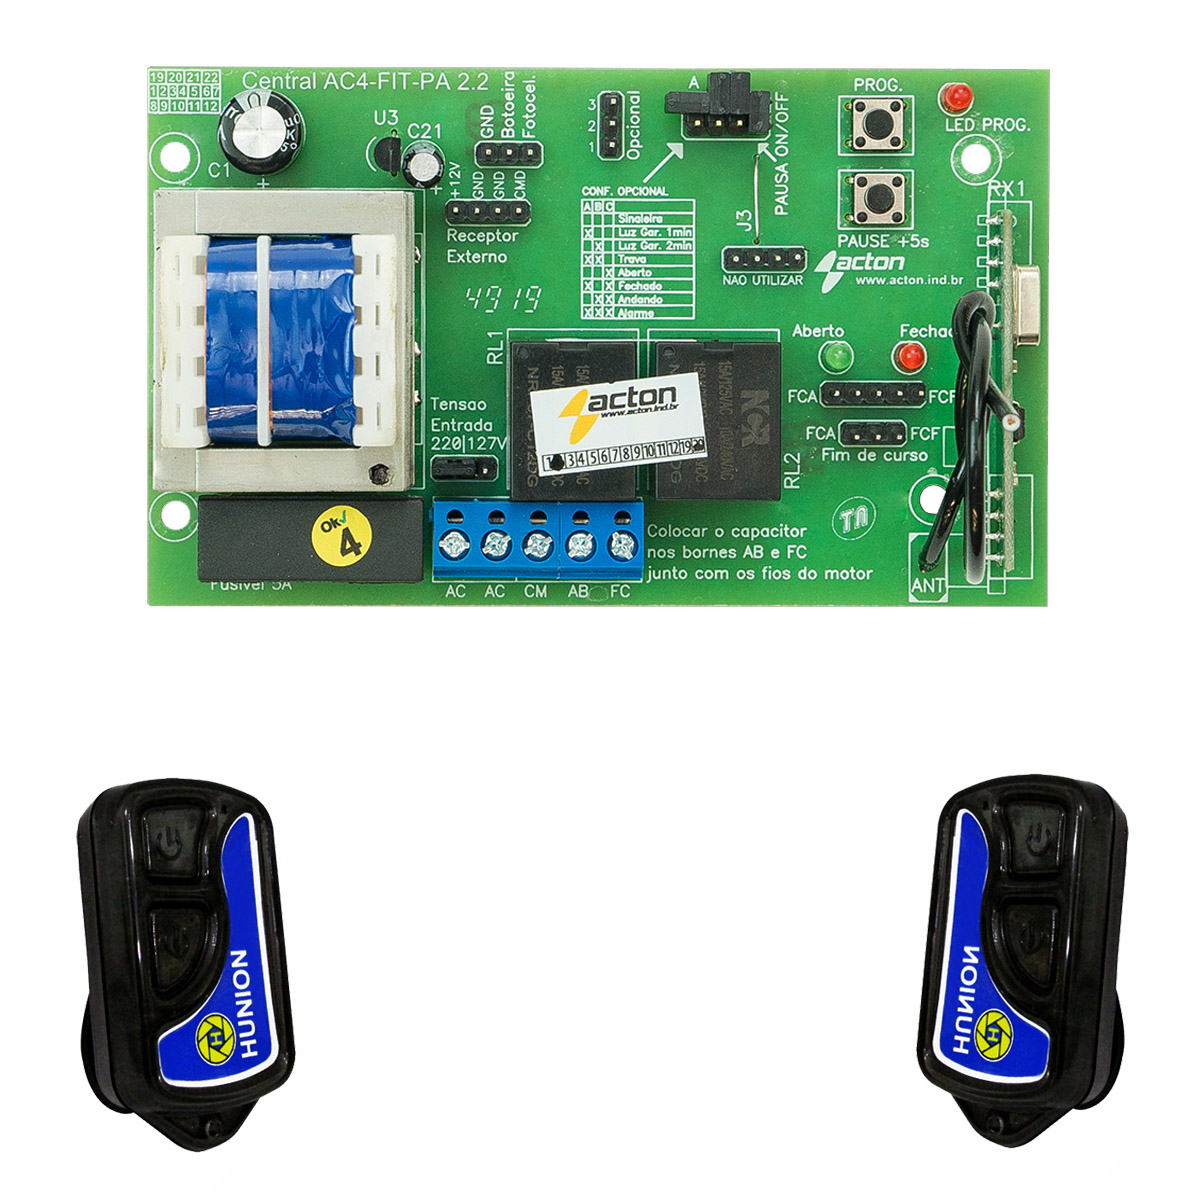 Kit Central Placa Comando Portão Automático E 2 Controles